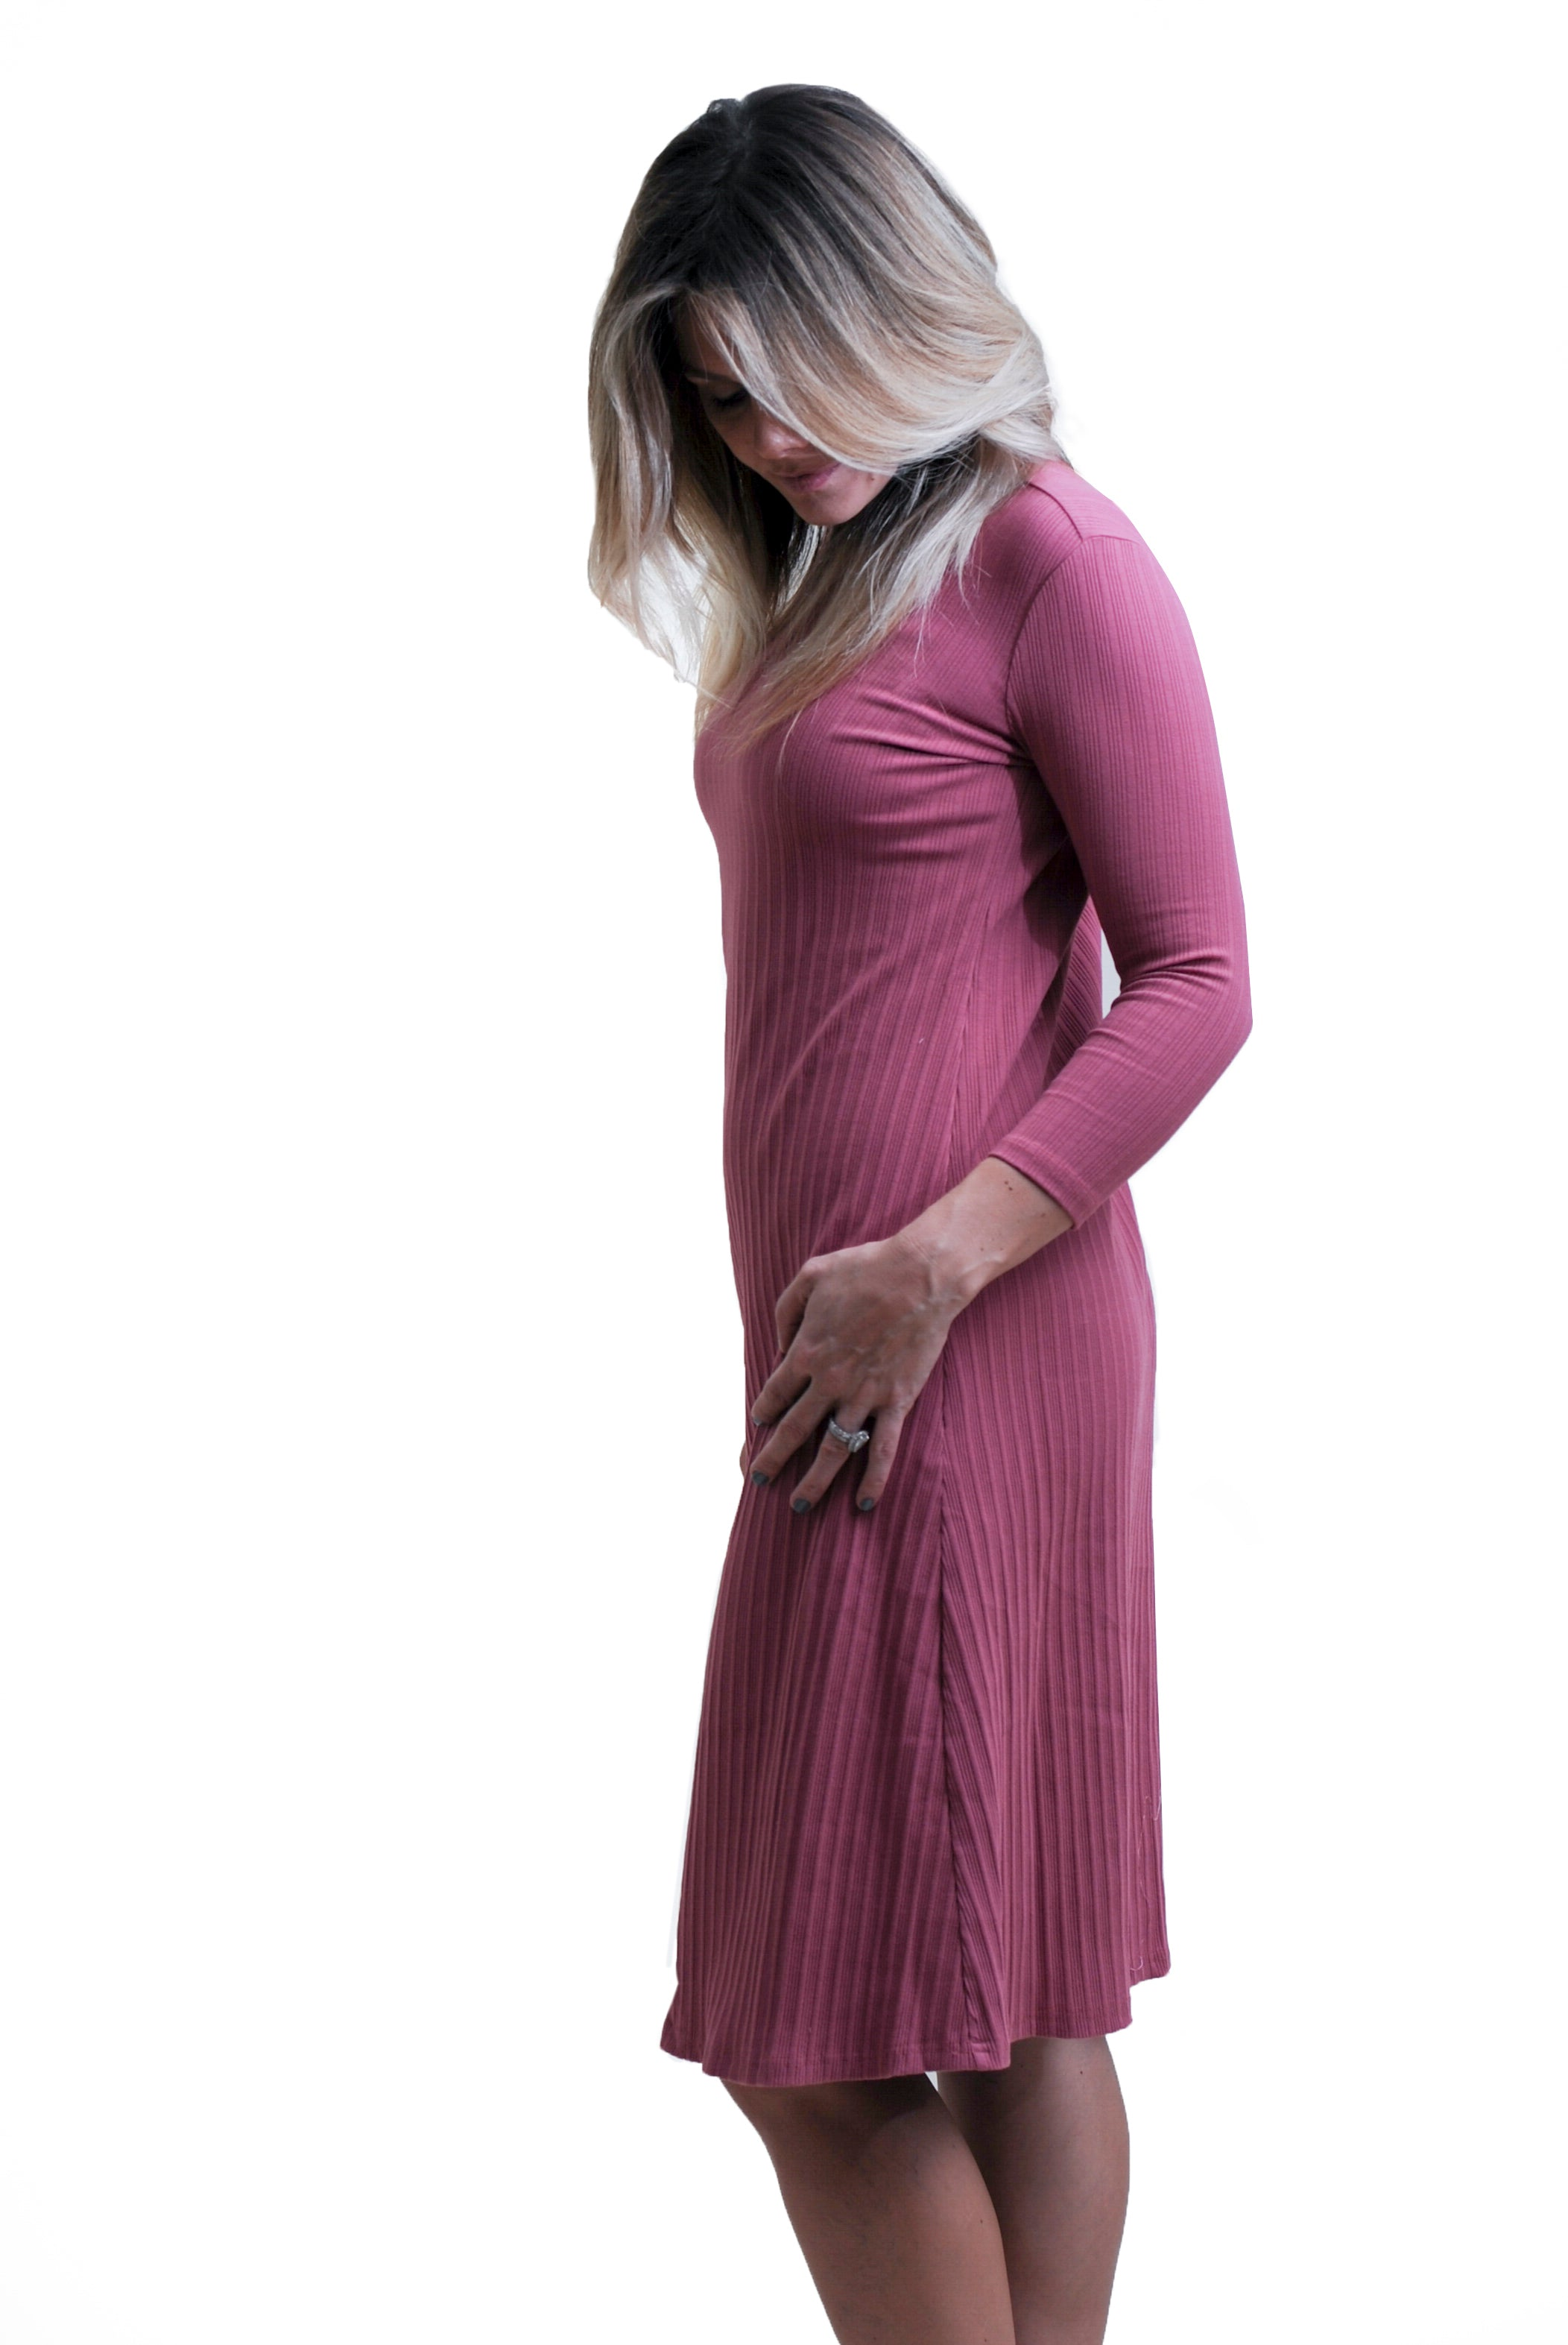 2a237df330302 Nursing Dresses for moms- Mauve ribbed Sundrop with side zippers ...